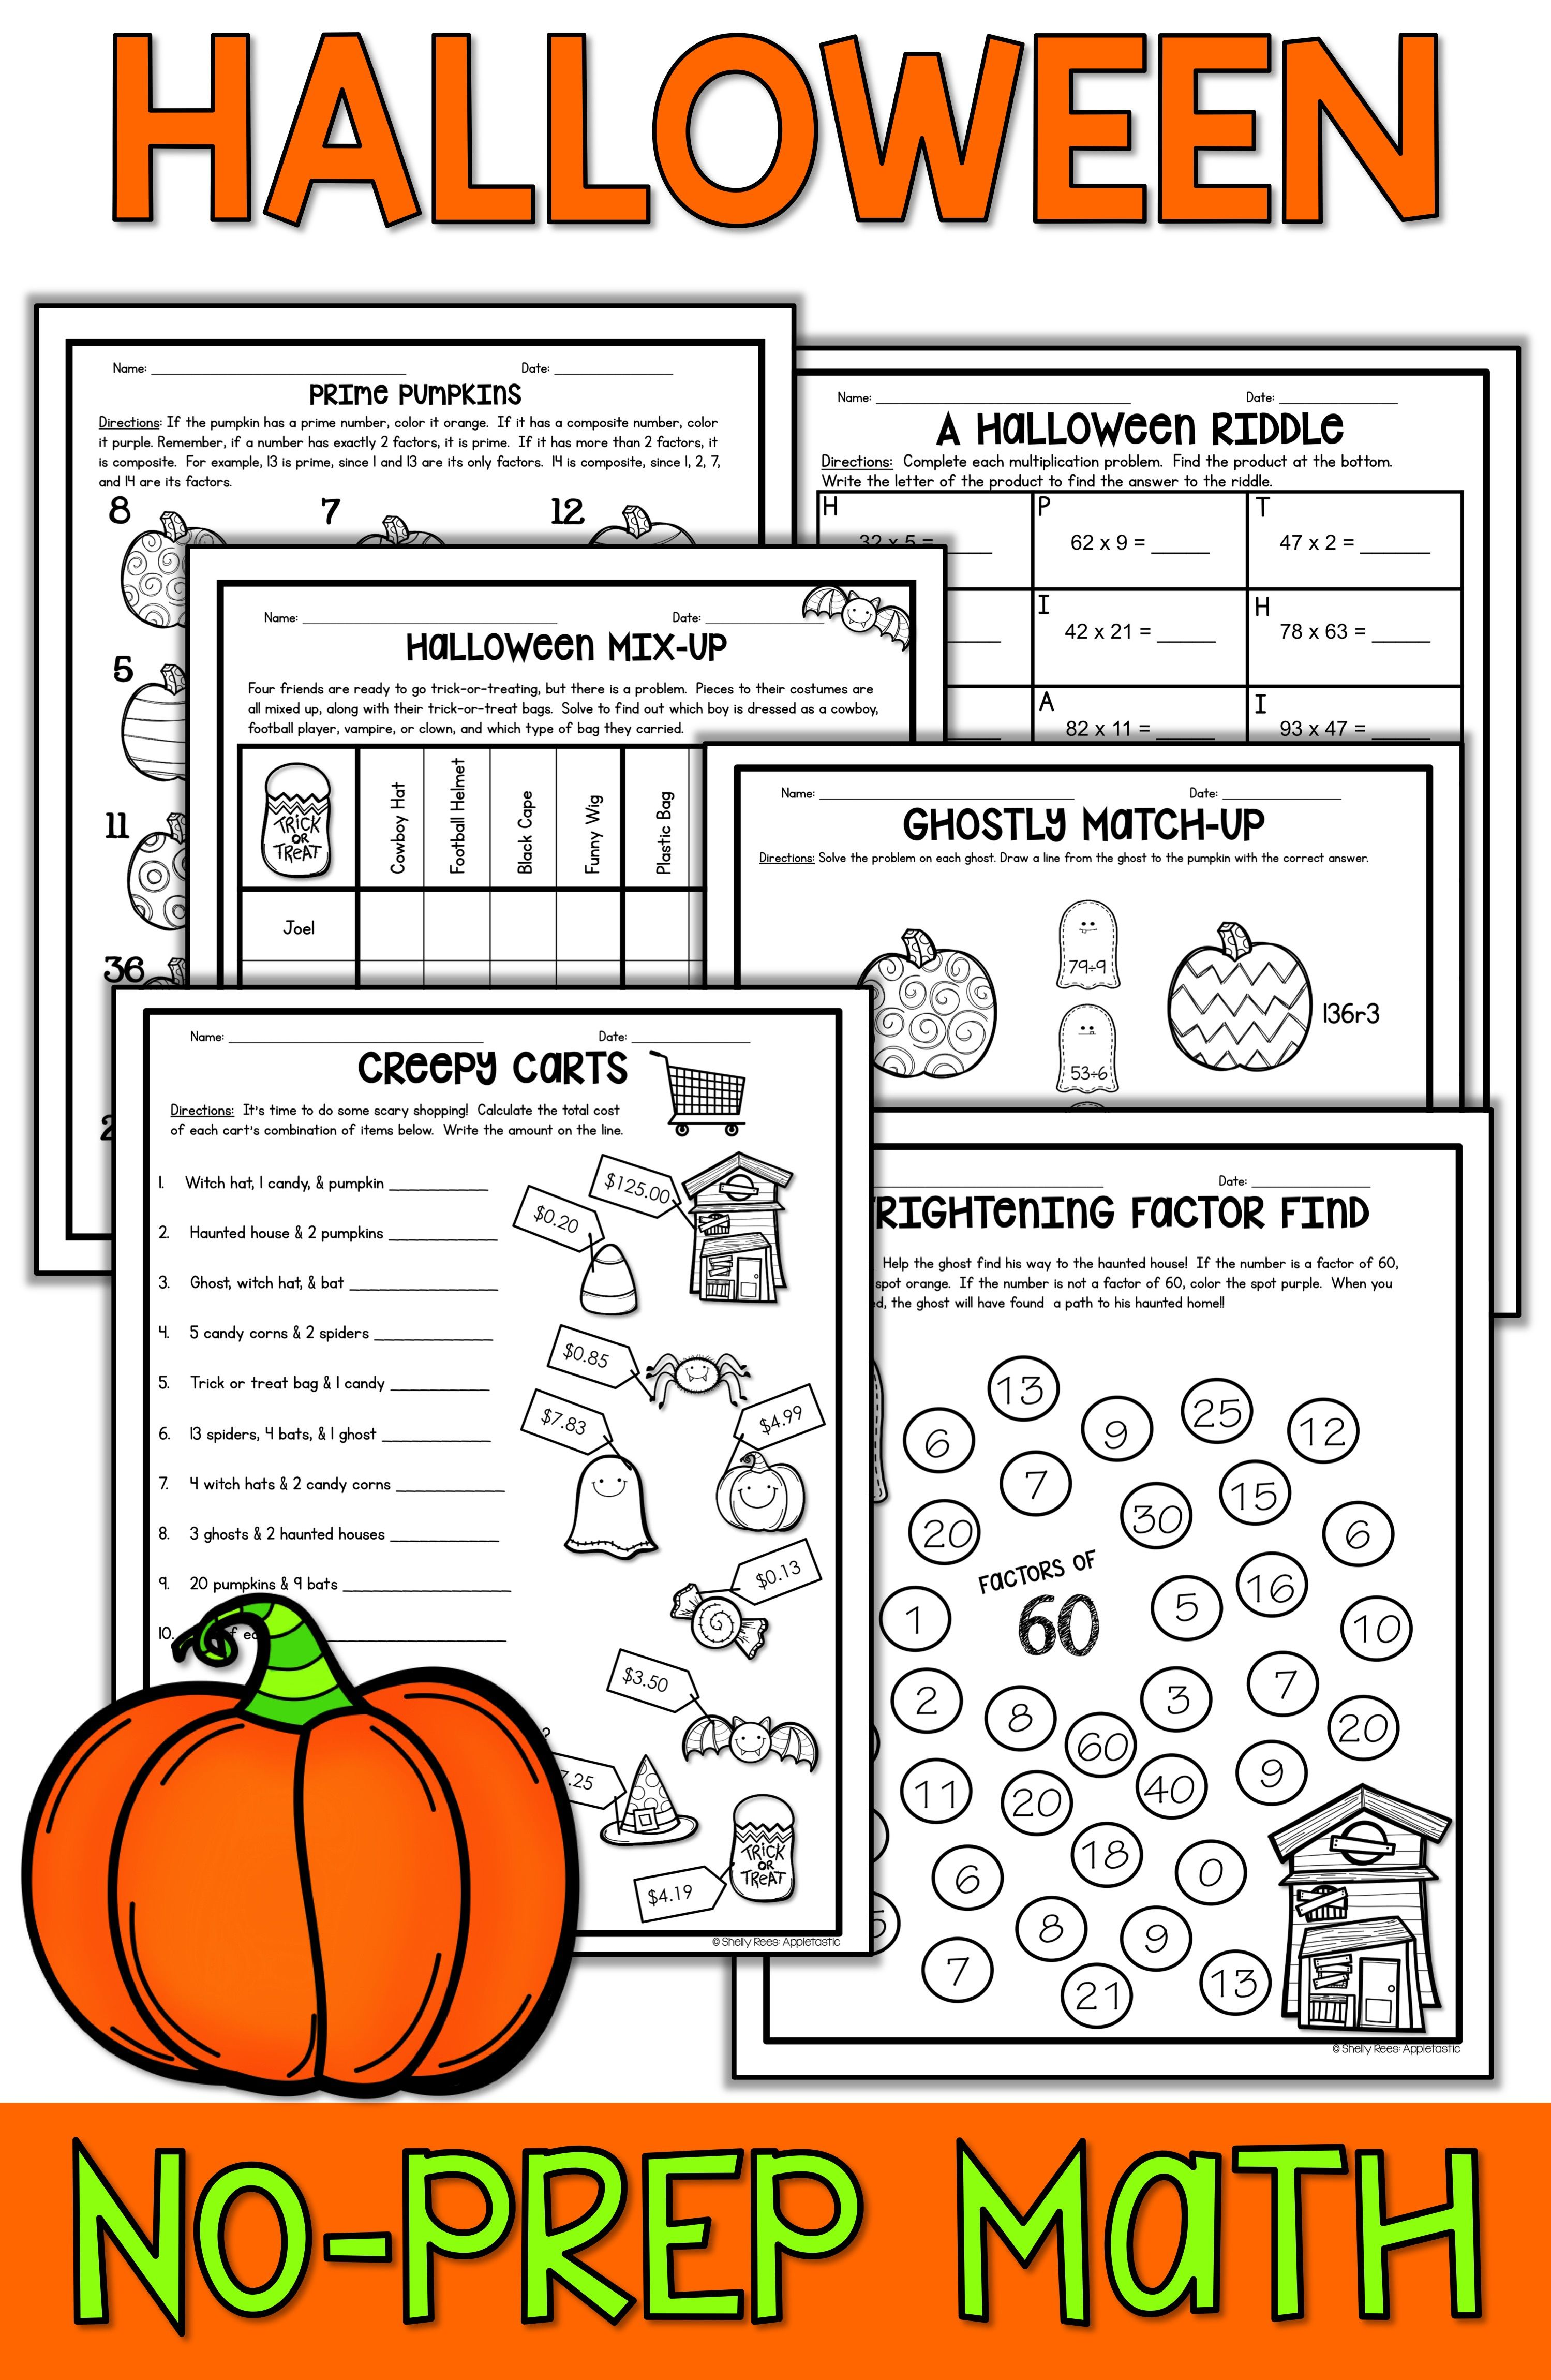 Halloween Math activities are fun and easy for teachers looking for  Halloween printable ideas for 3rd